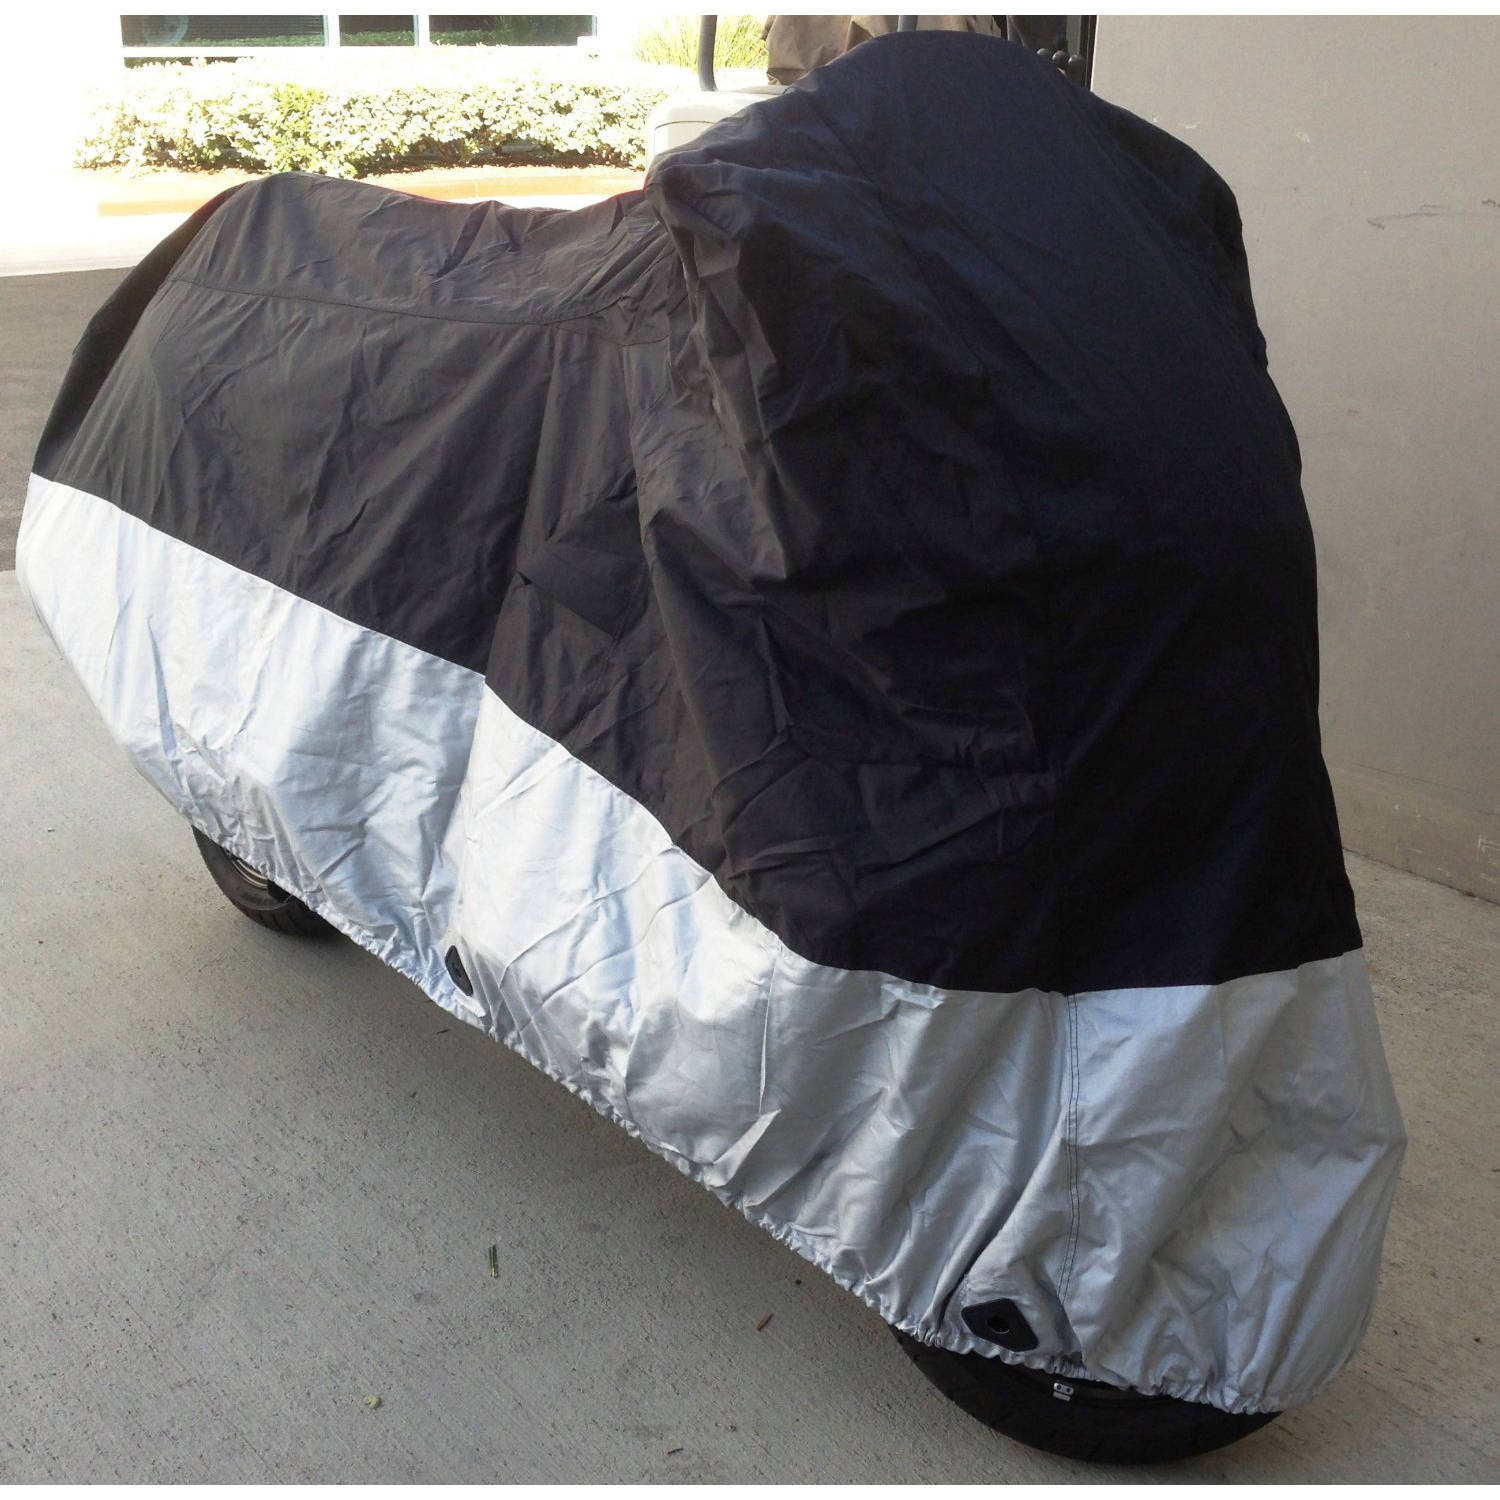 "Formosa Covers Heavy Duty Motorcycle cover (L) with cable & lock. Fits up to 84"" length sport bike, dirt bike, small cruiser"